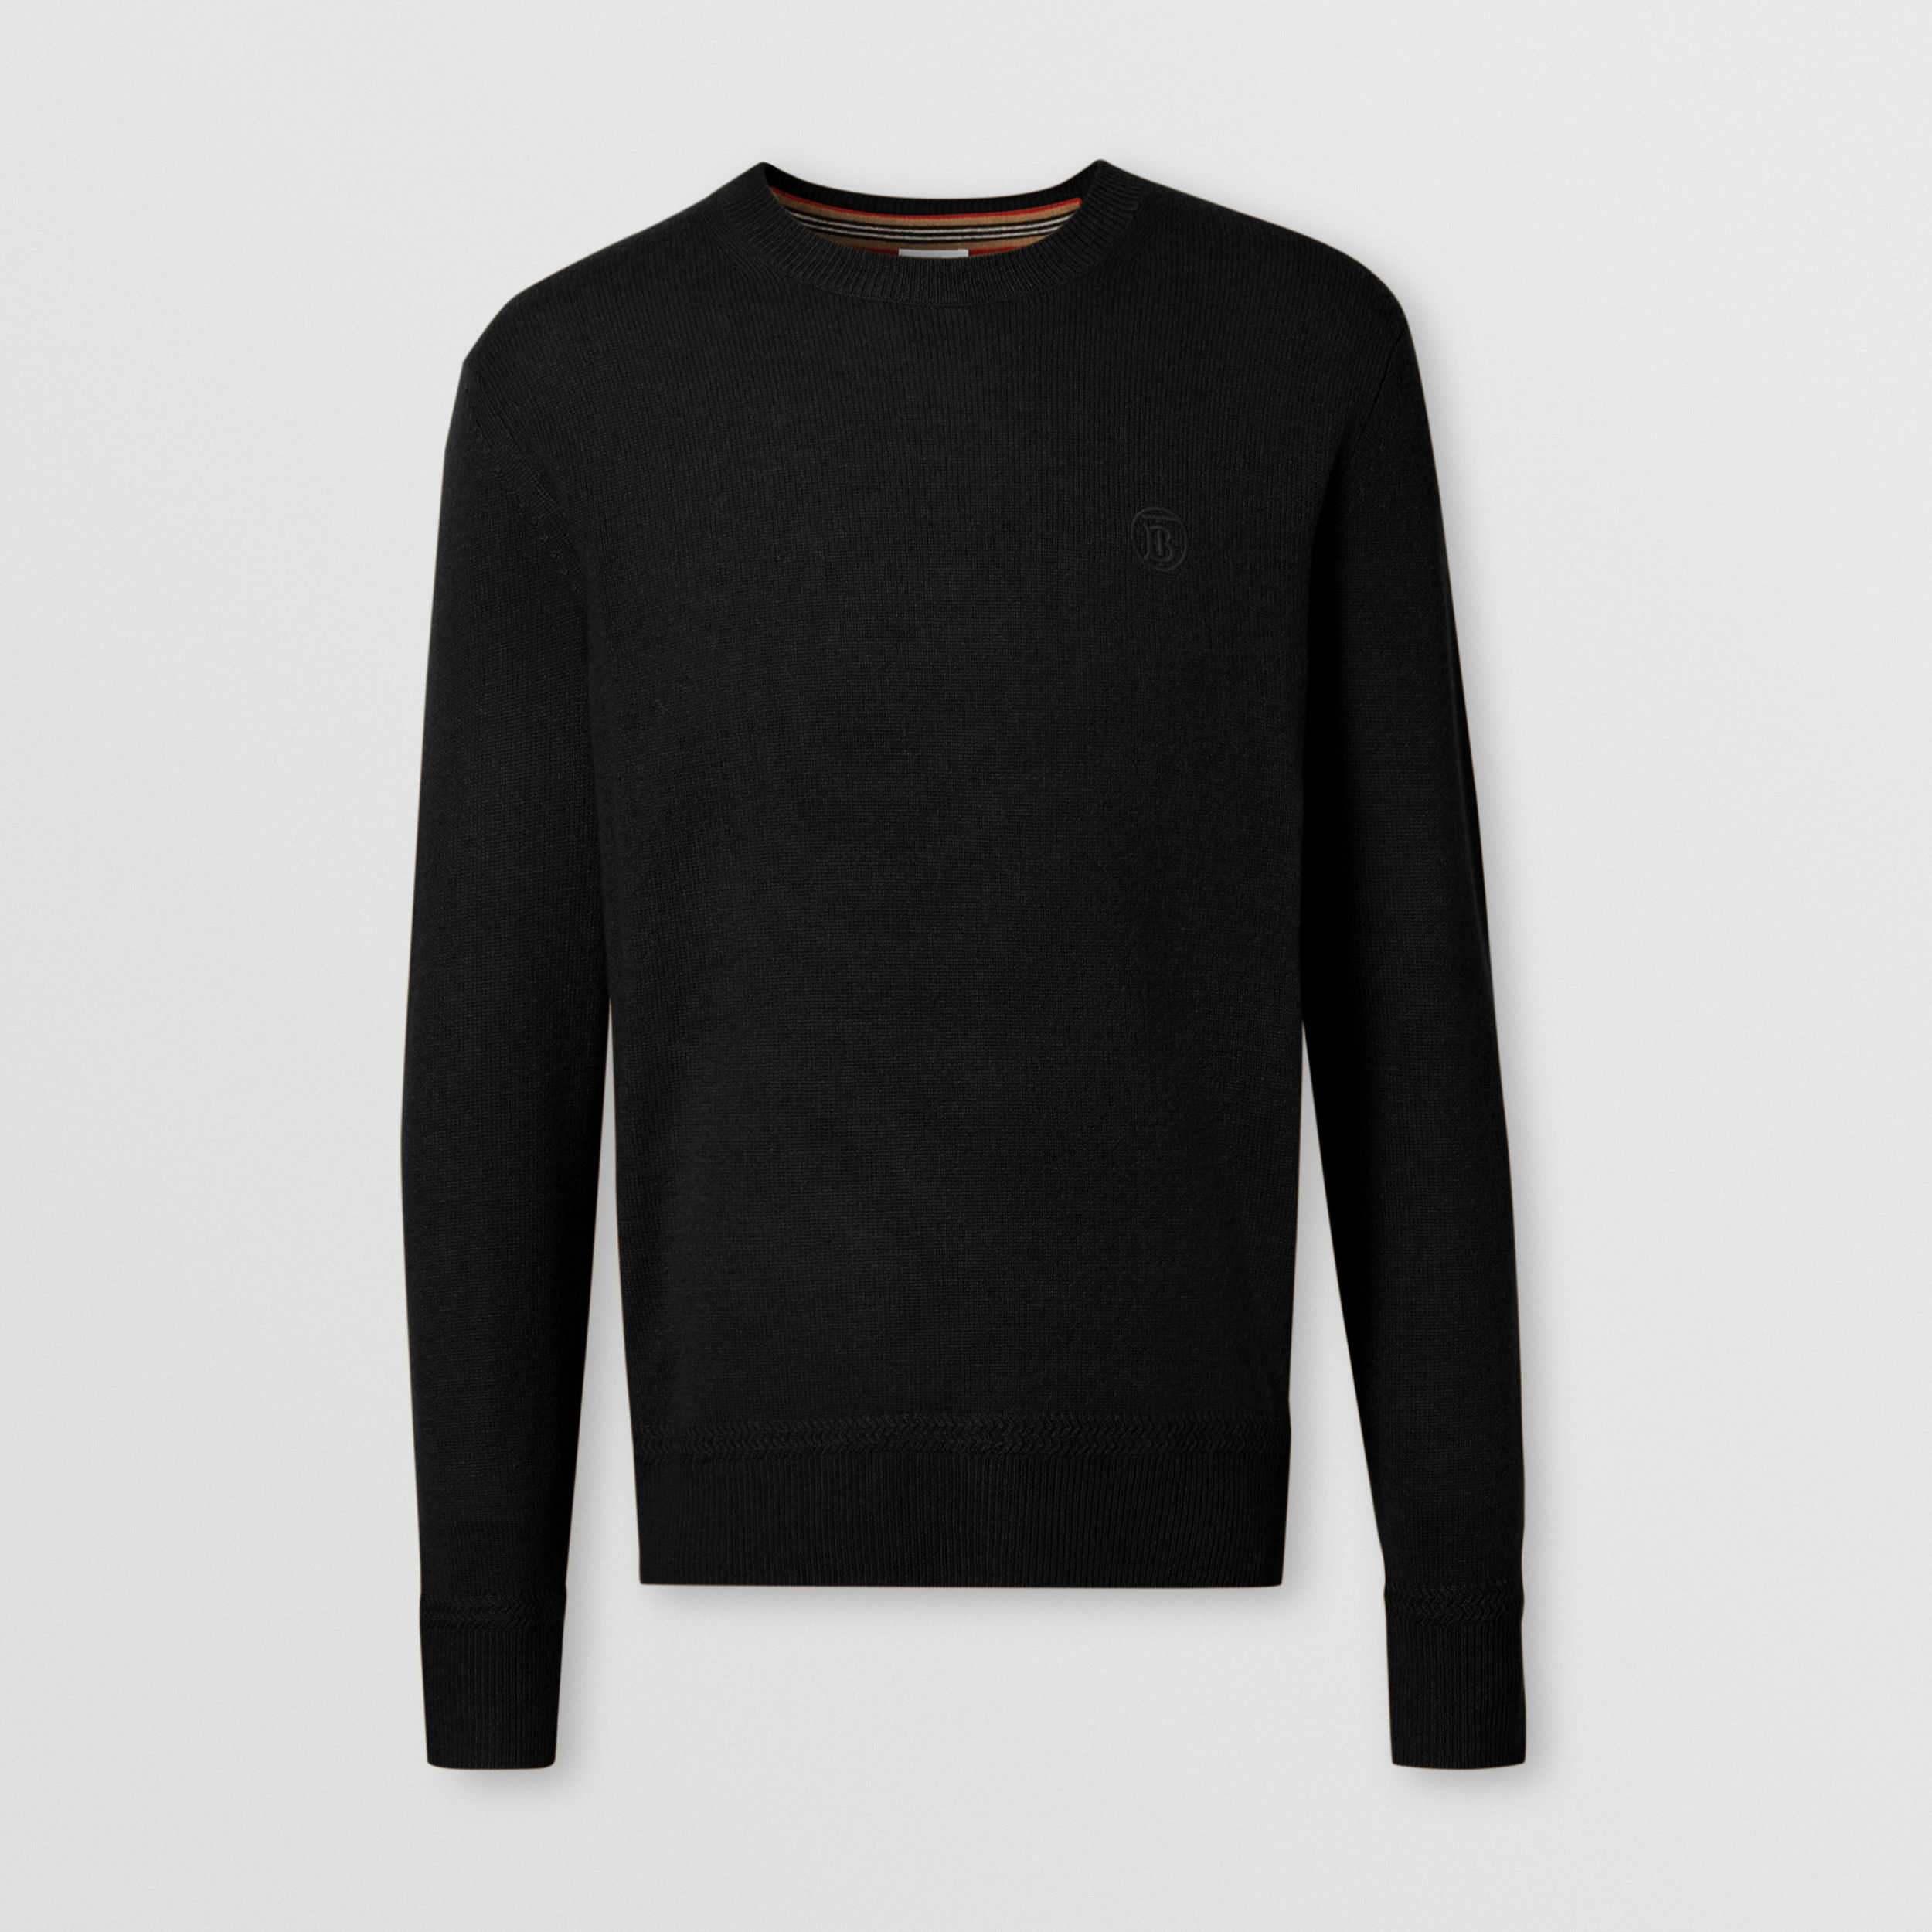 Monogram Motif Cashmere Sweater in Black - Men | Burberry - 4